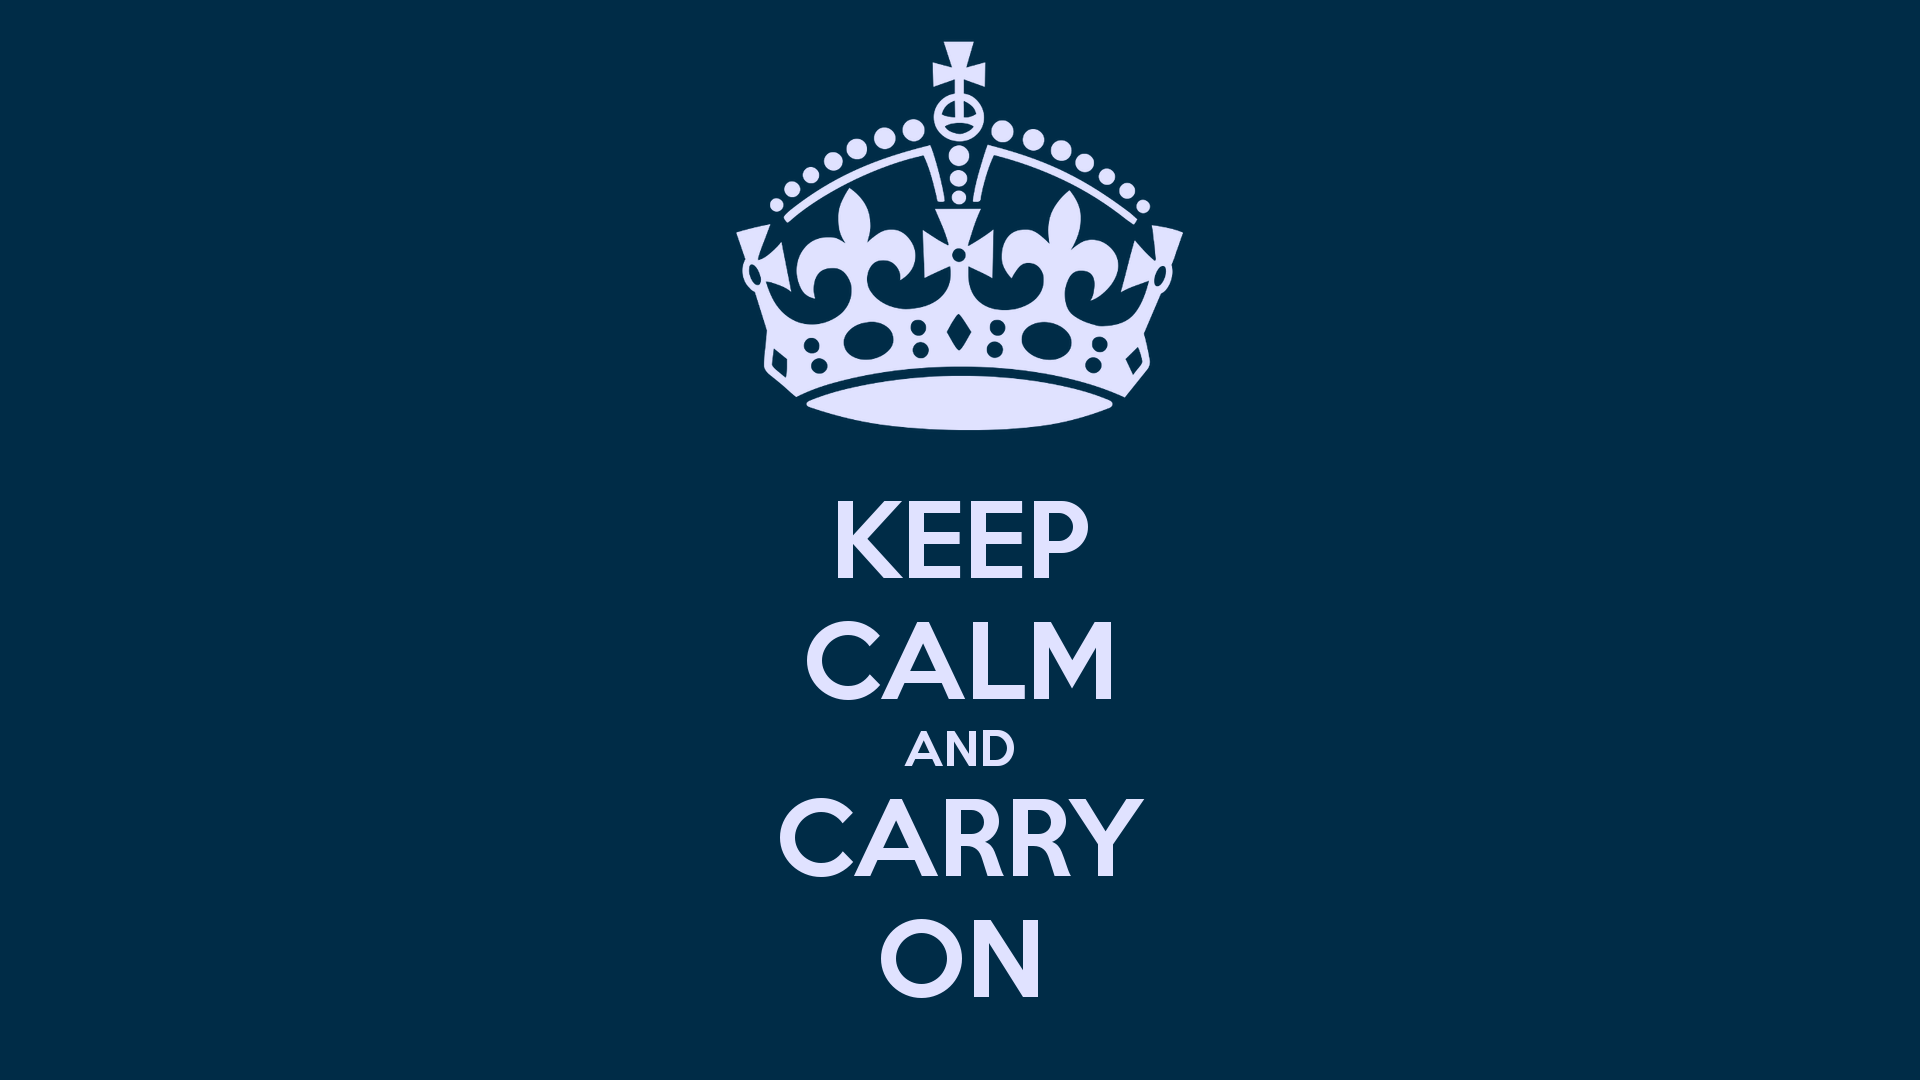 Keep Calm And Carry On Wallpaper Hd Keep Calm And Carry On 7363 1920x1080px